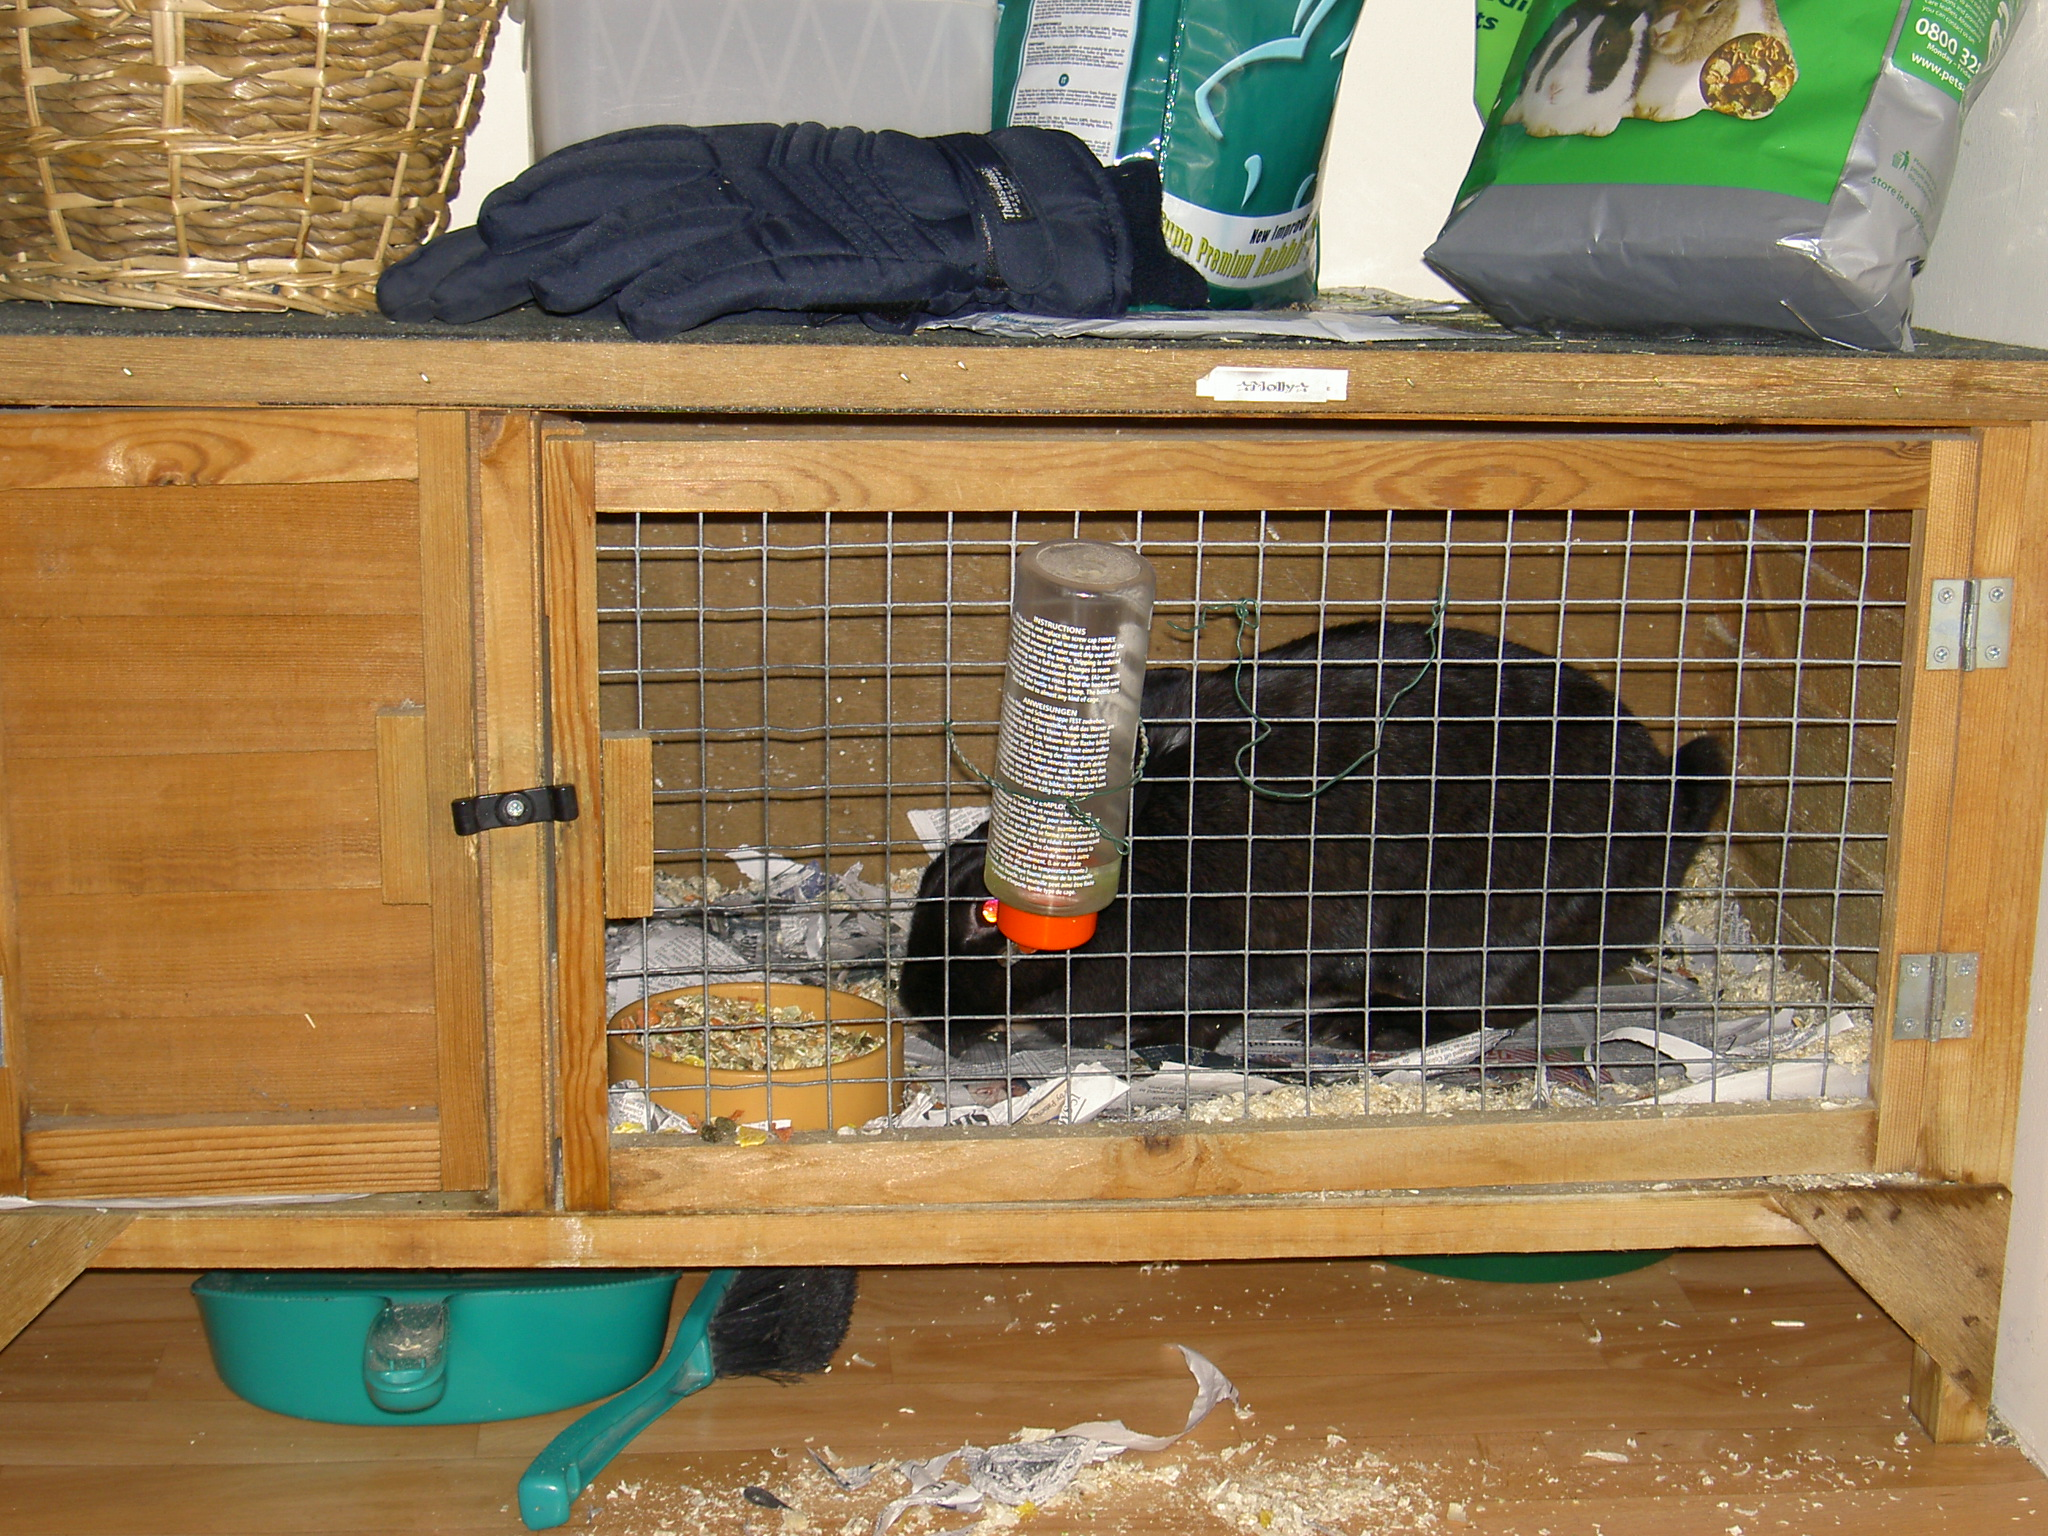 File:Rabbit in hutch.jpg - Wikimedia Commons